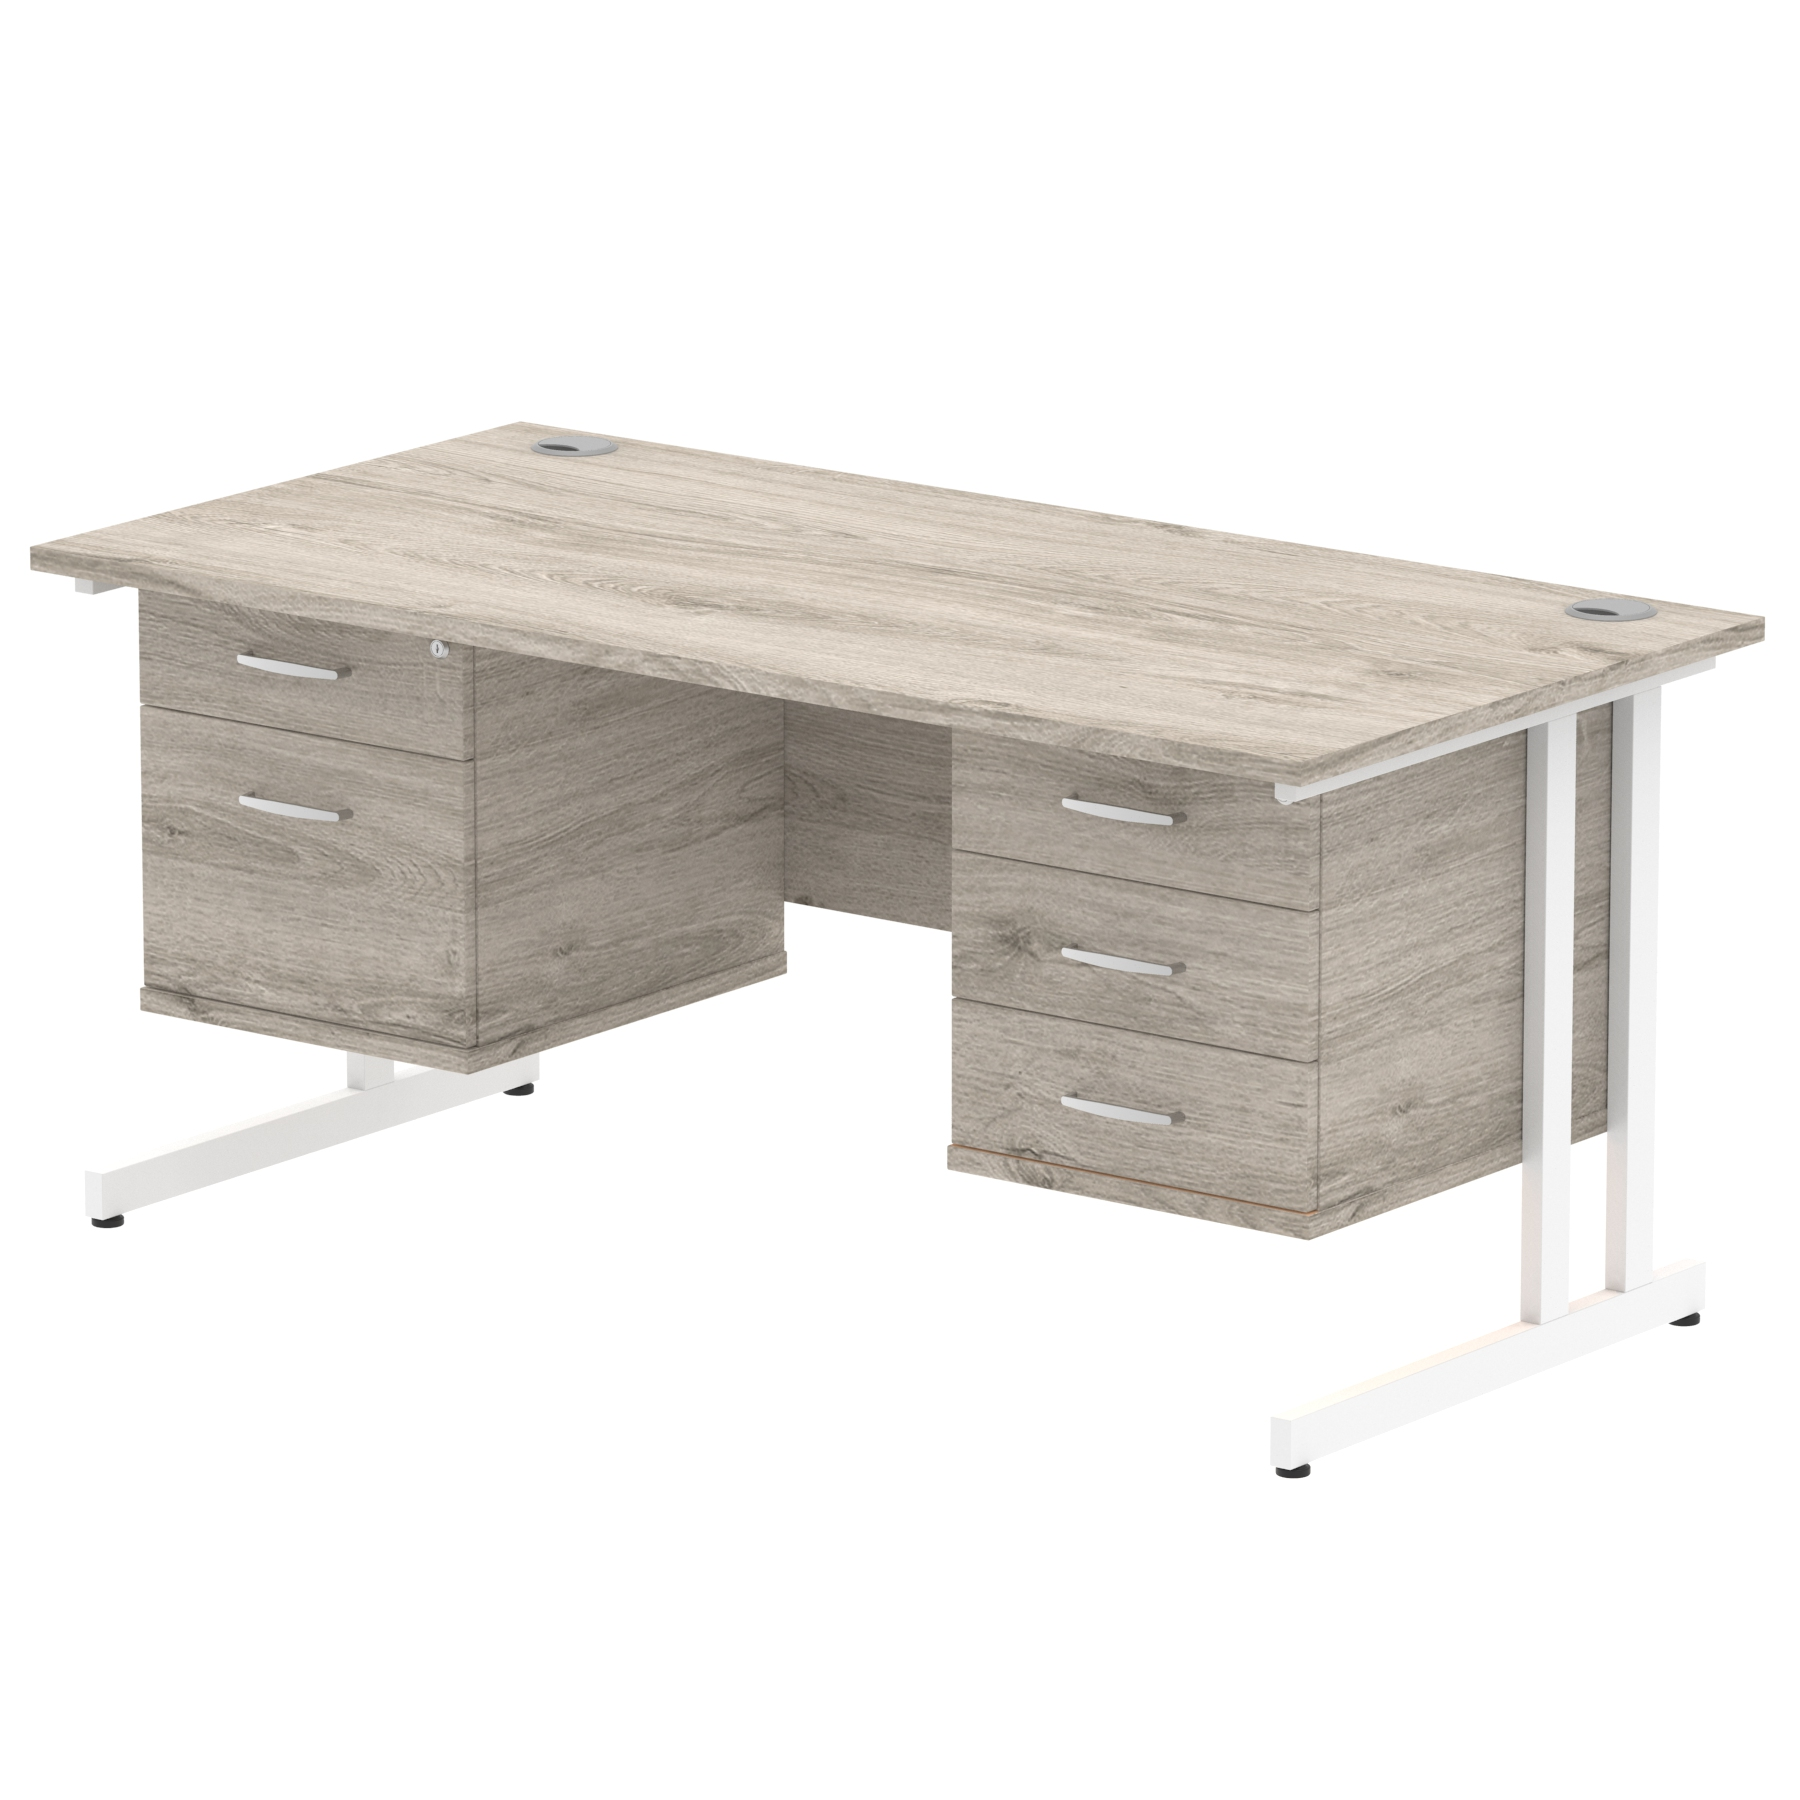 Trexus Rectangular Desk White Cantilever Leg 1600x800mm Double Fixed Ped 2&3 Drawer Grey Oak Ref I003495